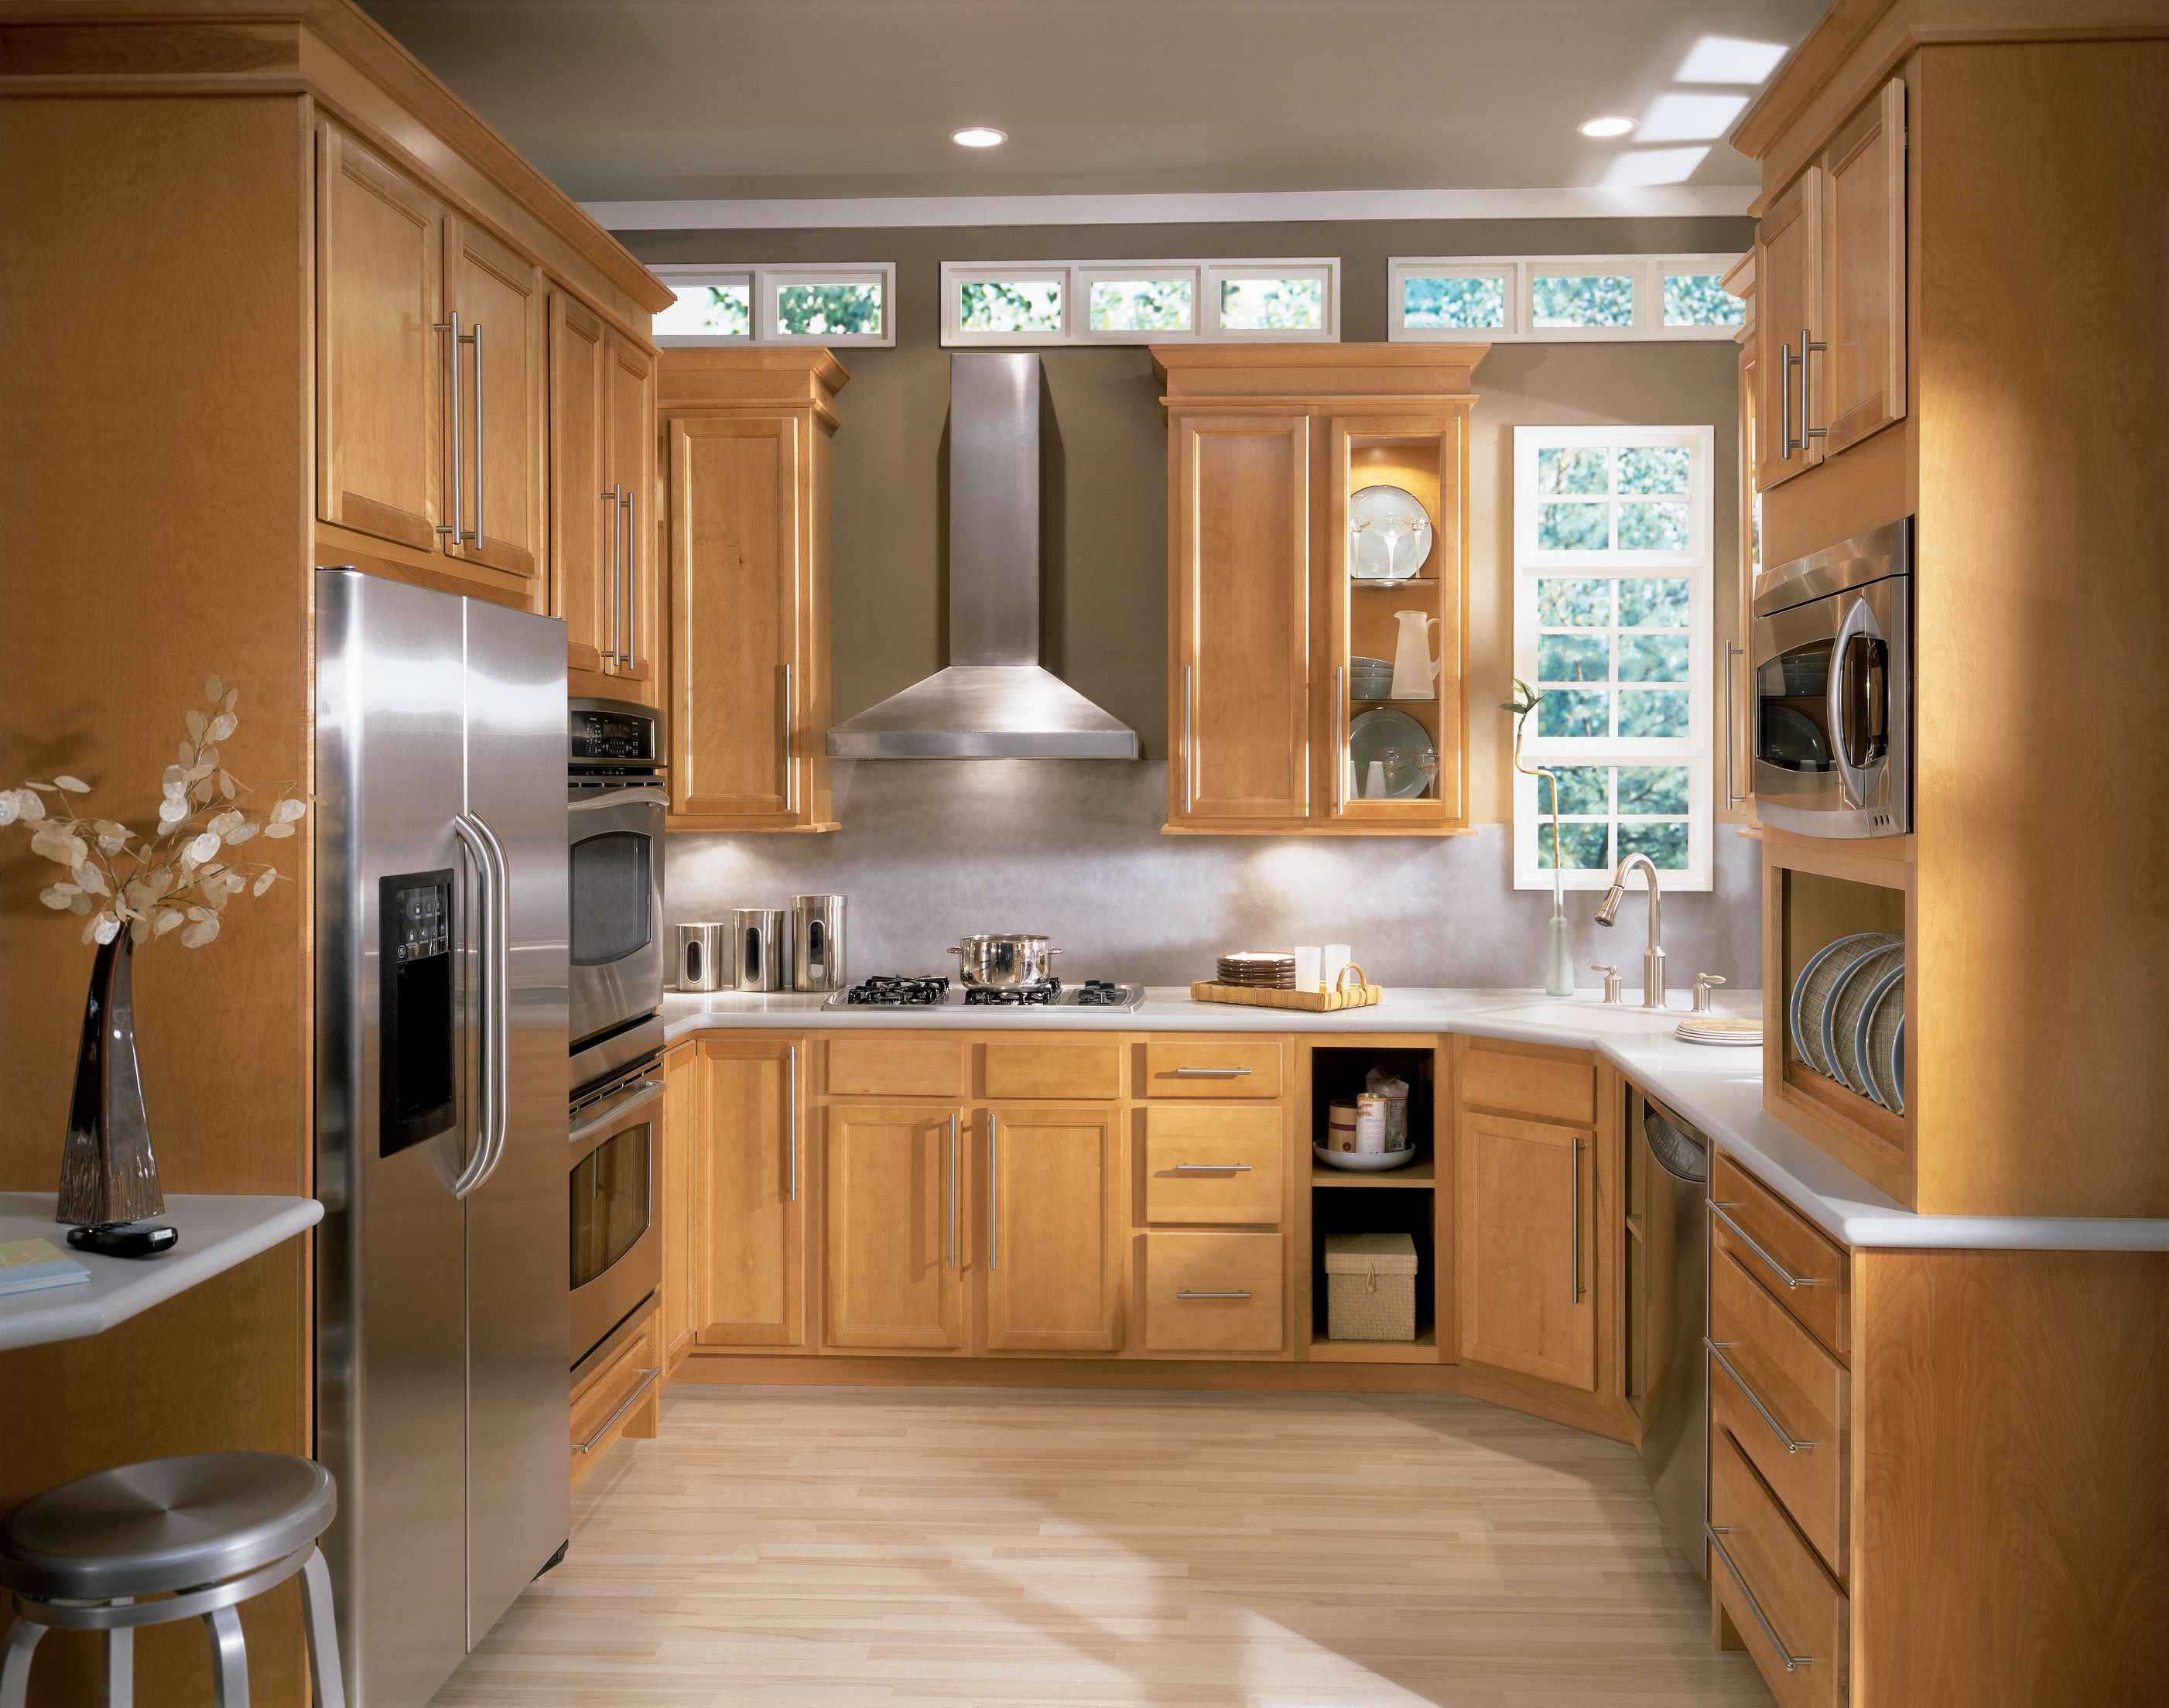 Sinclair Birch Cabinet Doors Feature A Narrow Rail Flat Center Panel And Tight Wood Grain That Combine To Deliver Clean Cur Look